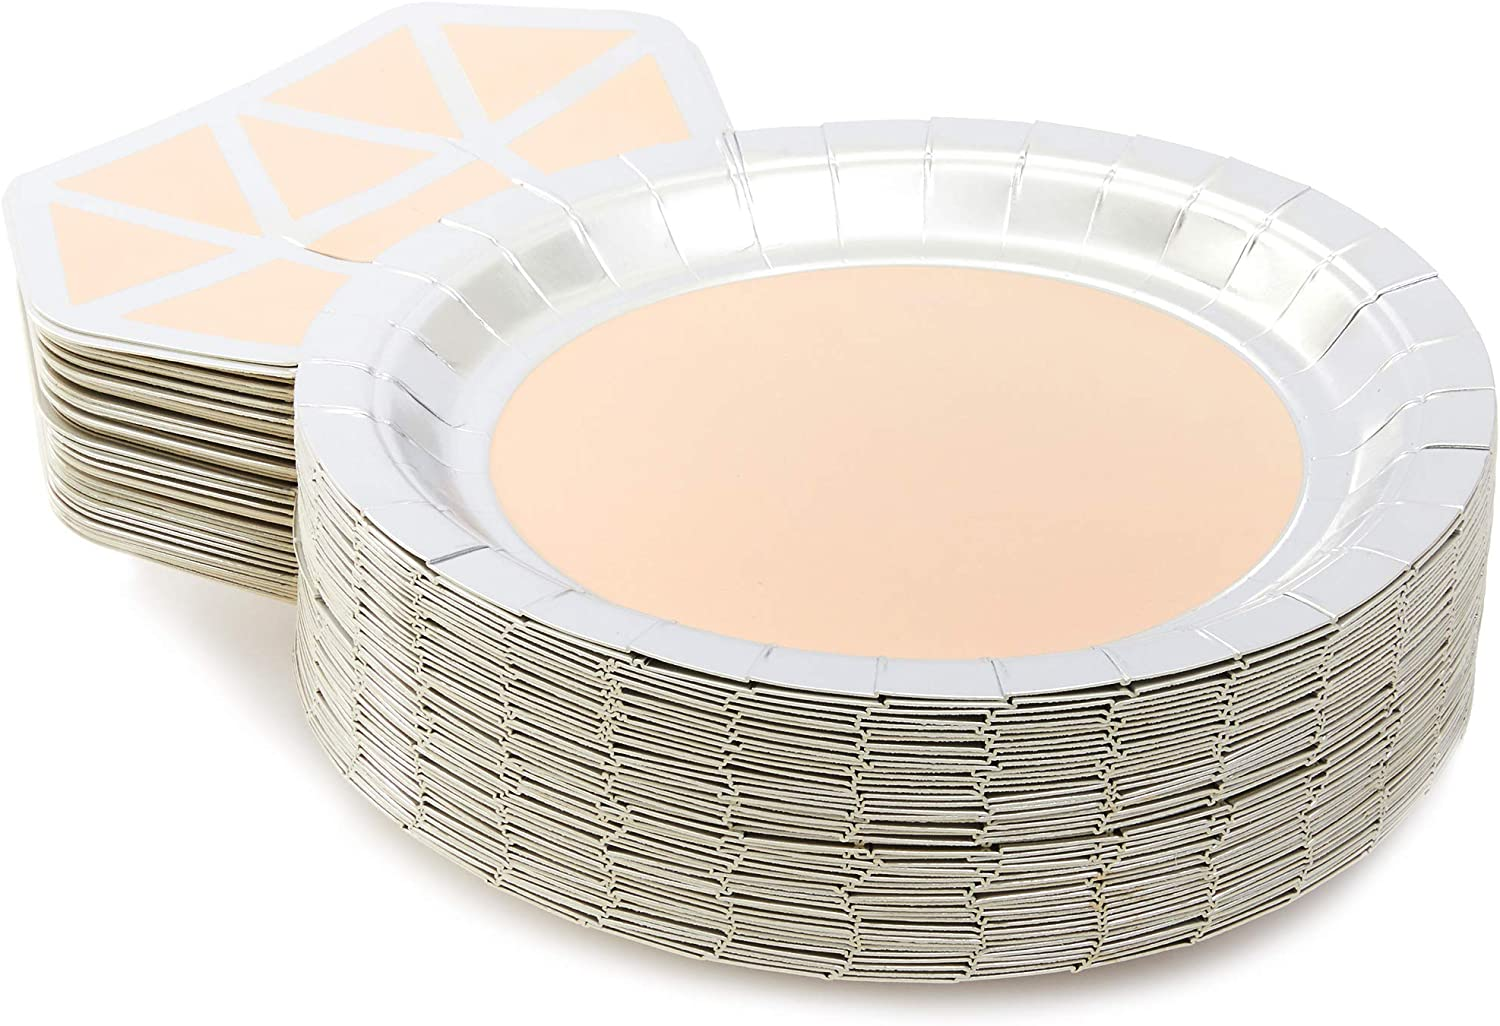 Diamond Ring Party Plates for Bridal Showers and Engagements 48 Pack